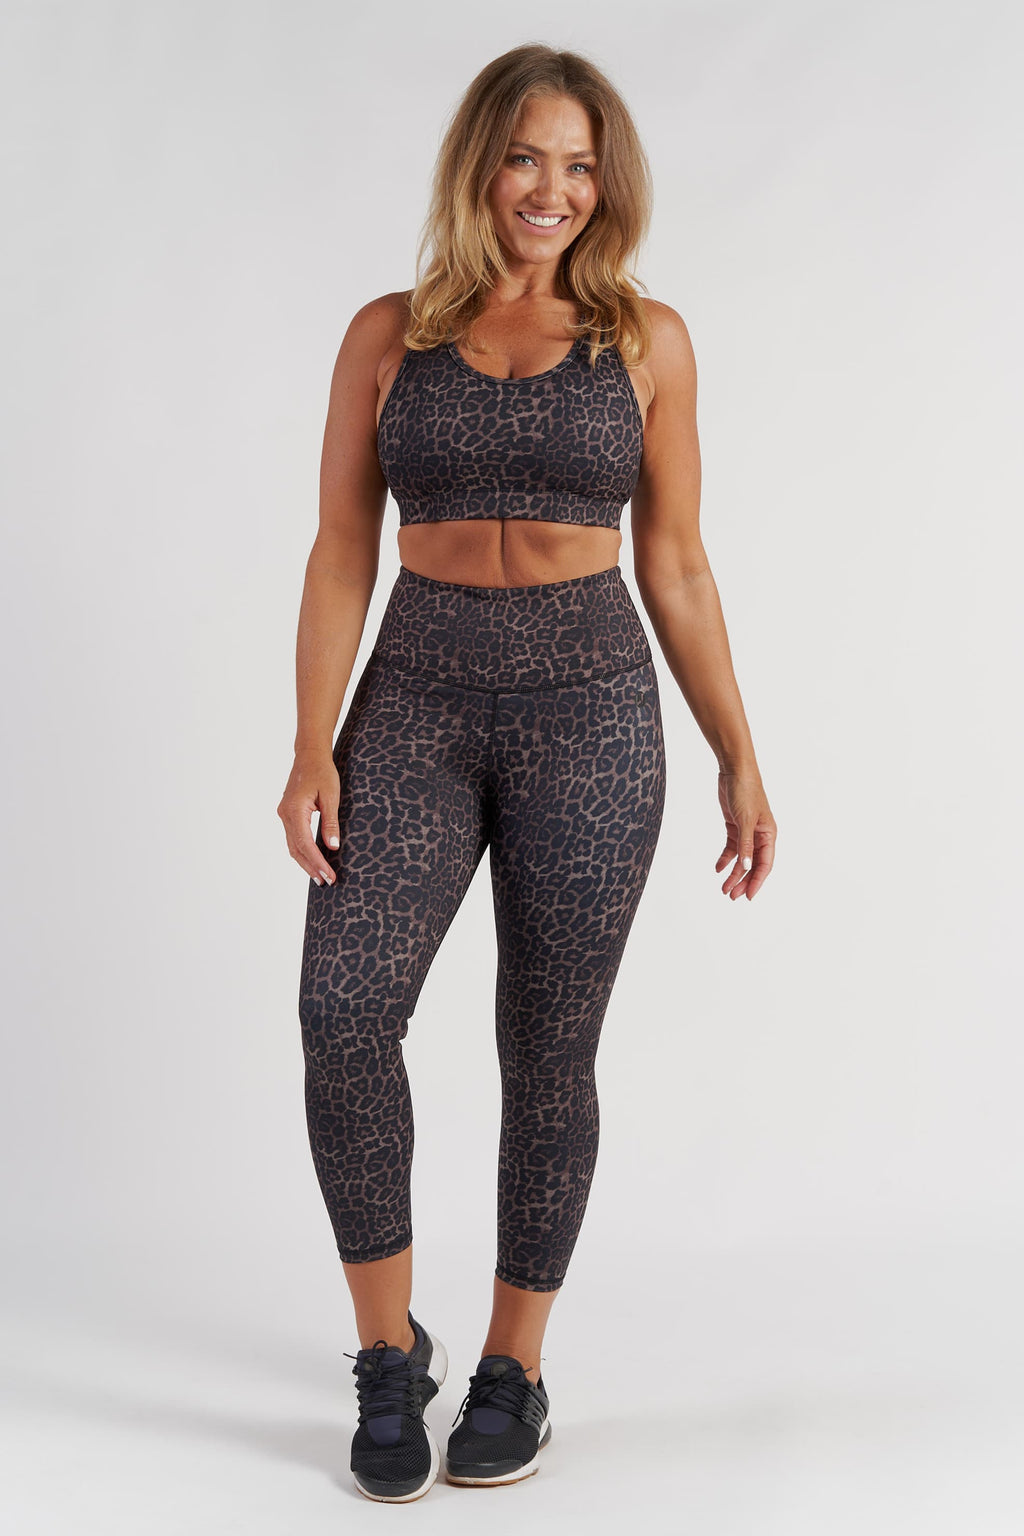 Ultimate Crop - Bronze Leopard from Active Truth USA